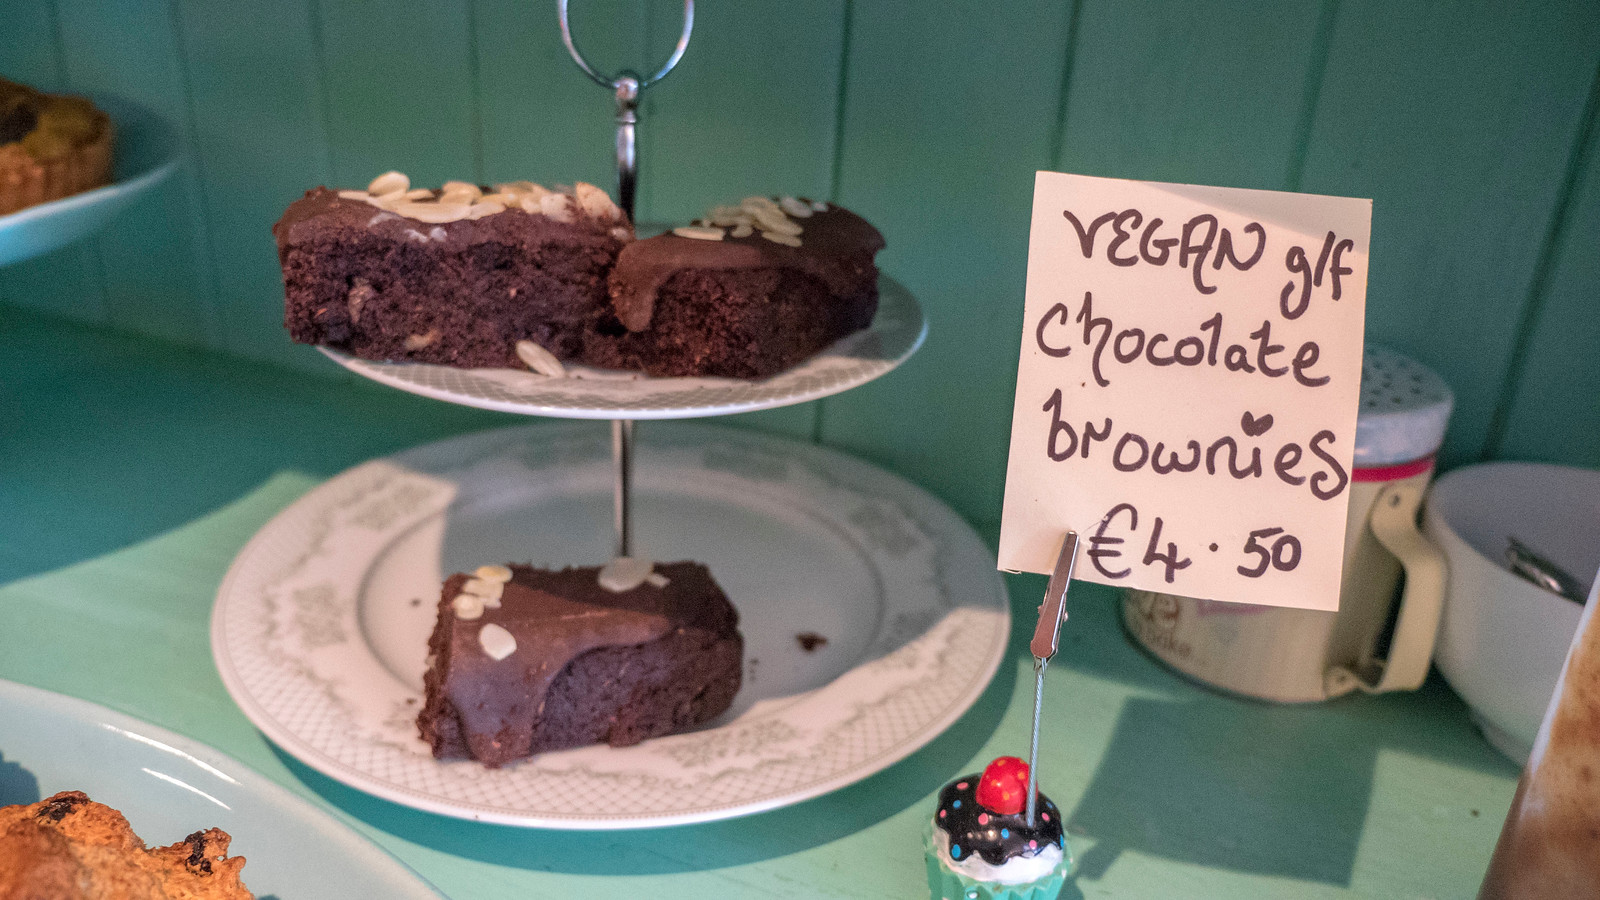 Vegan brownies at Lighthouse Cafe, Galway - Vegan Galway Restaurant and Dining Guide